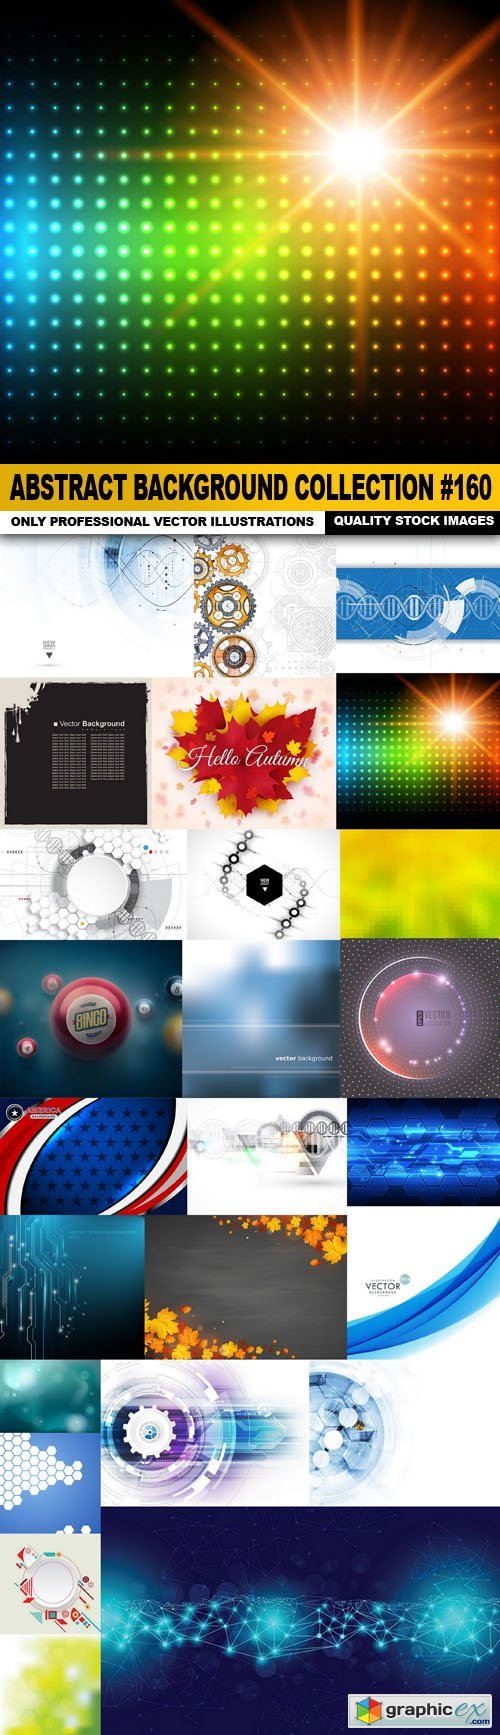 Abstract Background Collection #160 - 25 Vector